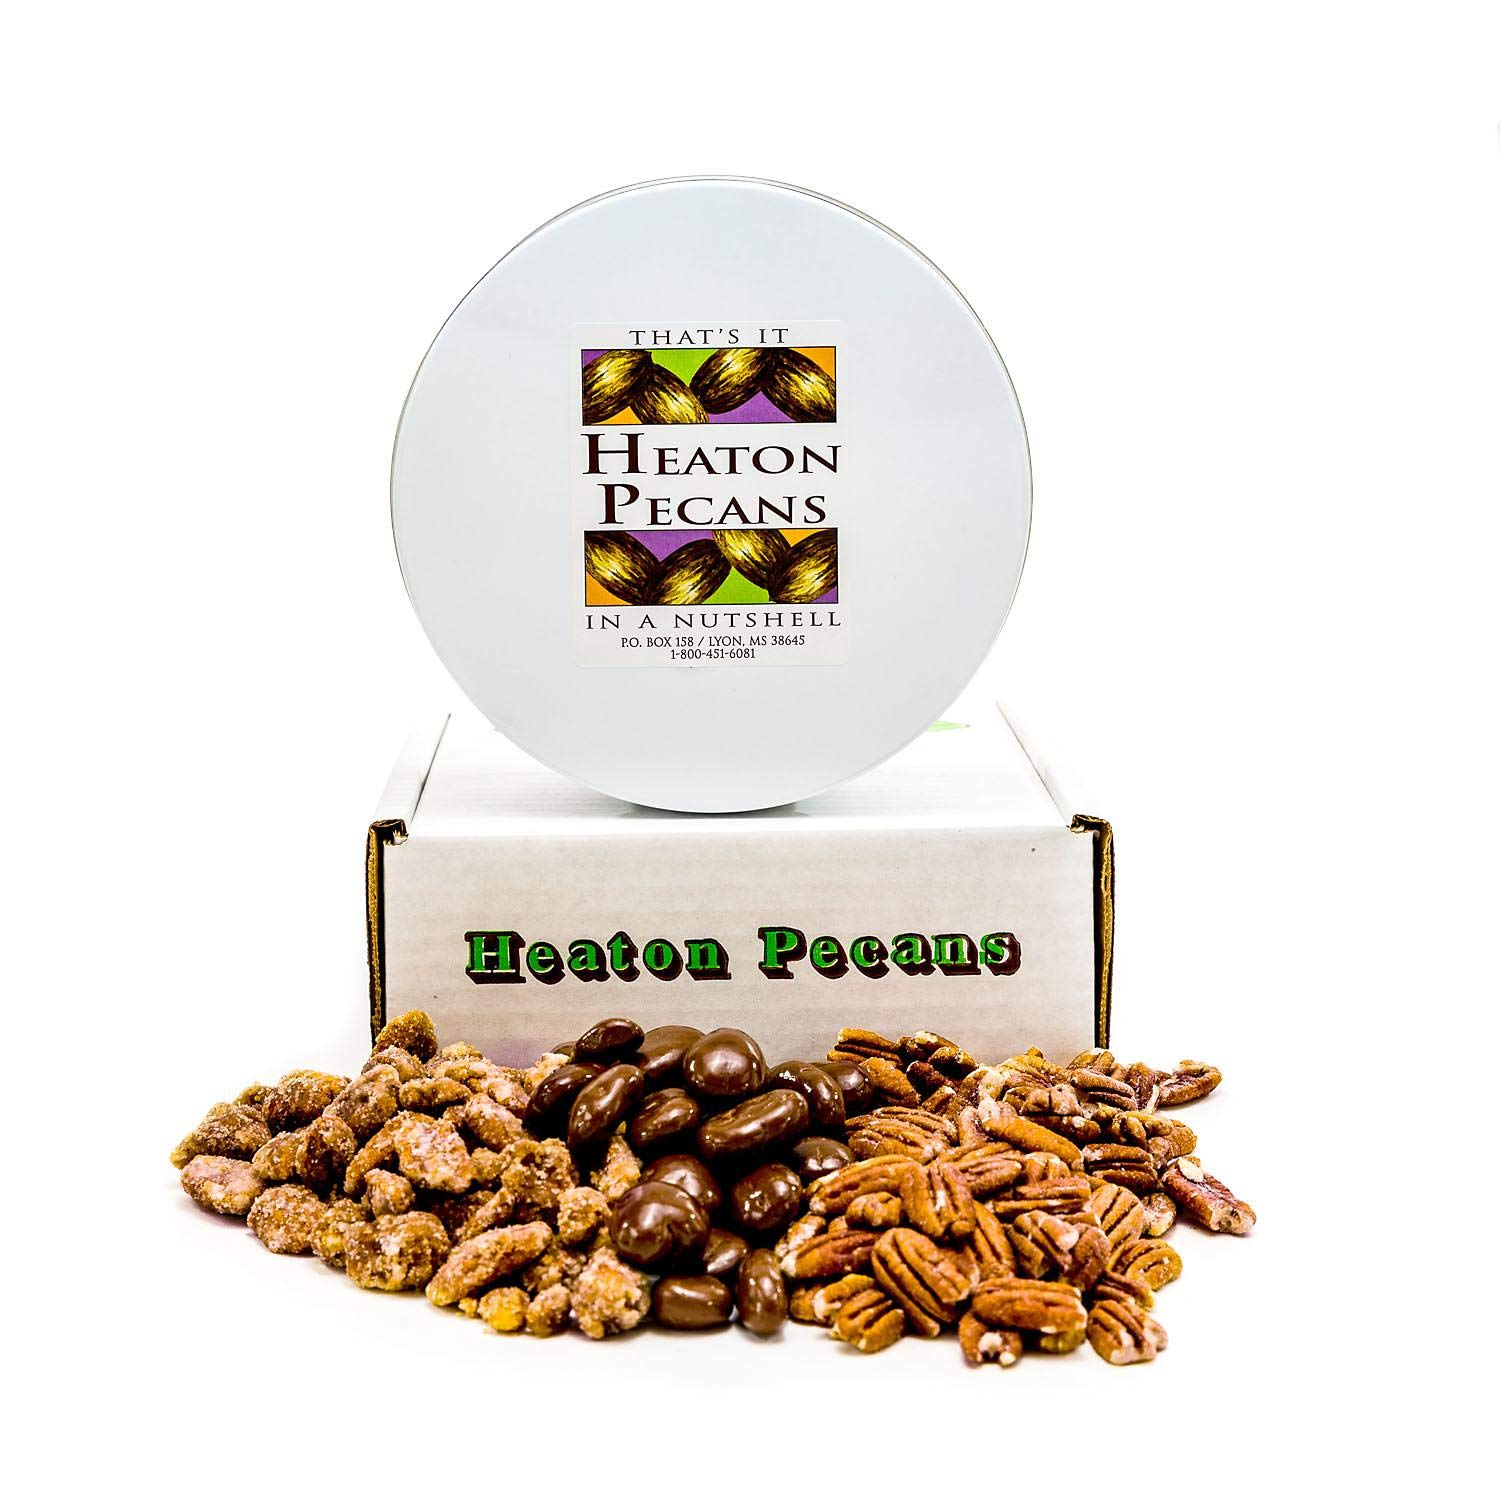 A Product of Heaton Pecans, Chocolate-Covered, Oven Roasted/ Salted, and Praline